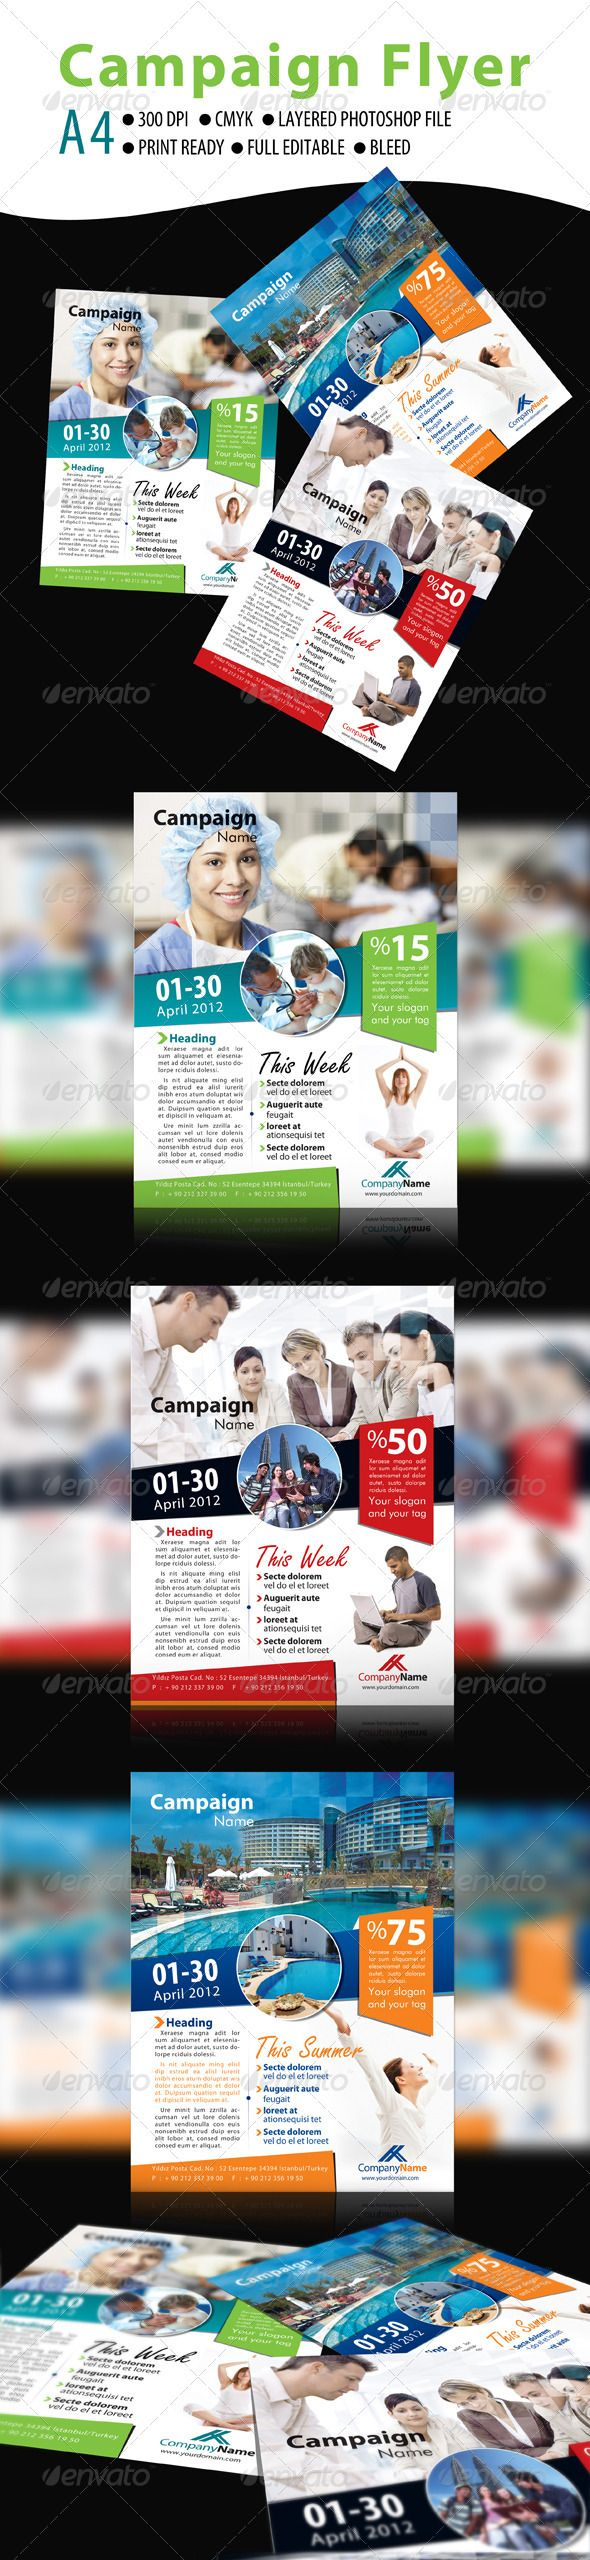 campaign flyer flyer print templates fonts travel templates · campaign flyer